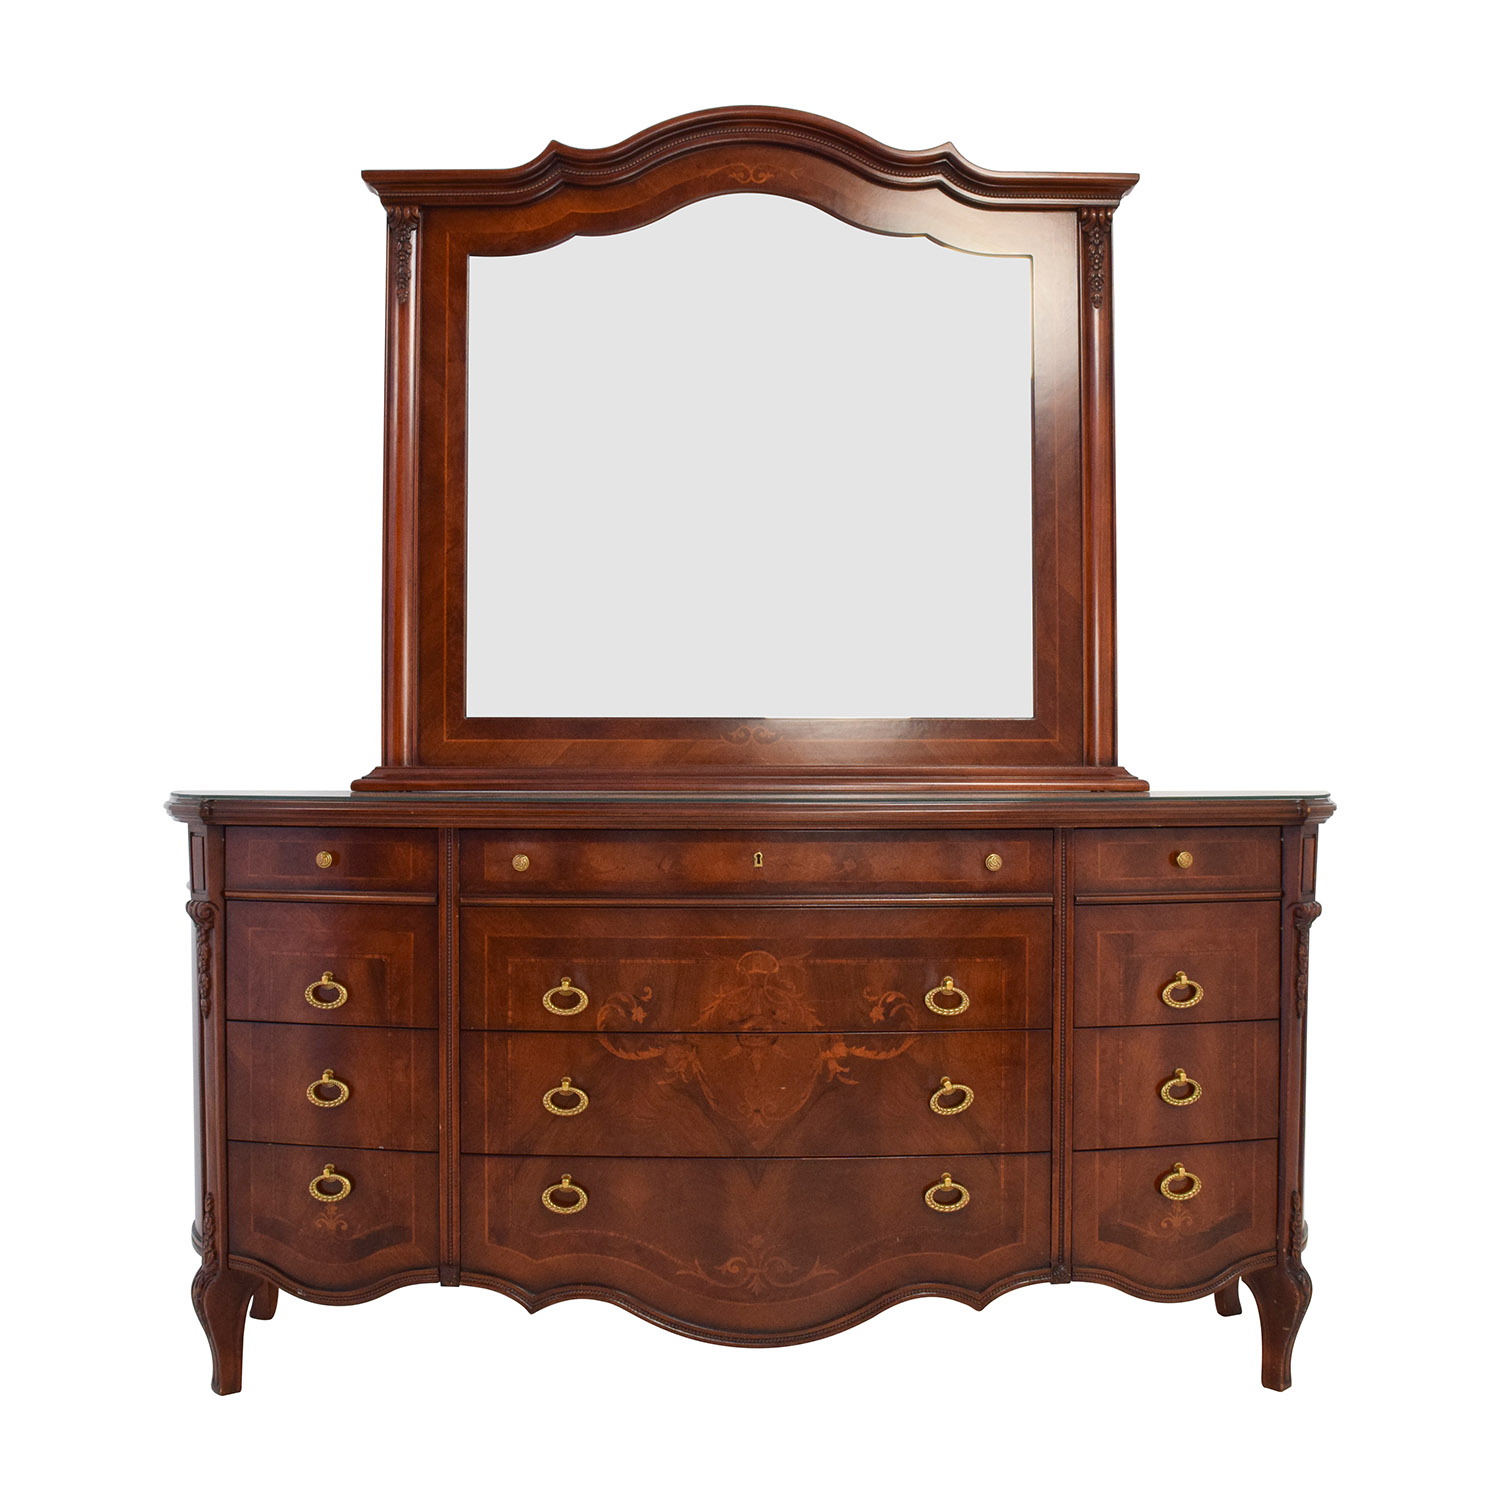 90 Off Antique European Wood Dresser With Mirror Storage